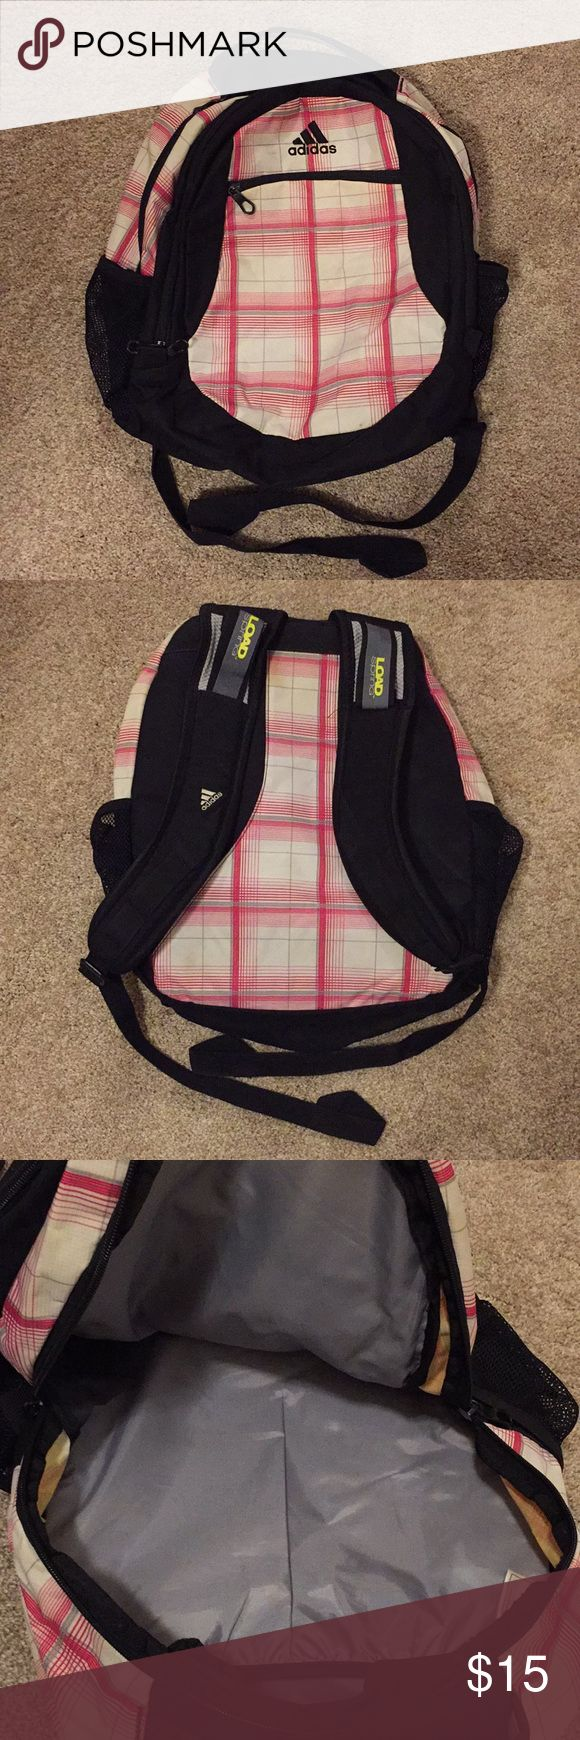 Adidas Plaid Backpack Pink and white plaid with bl…